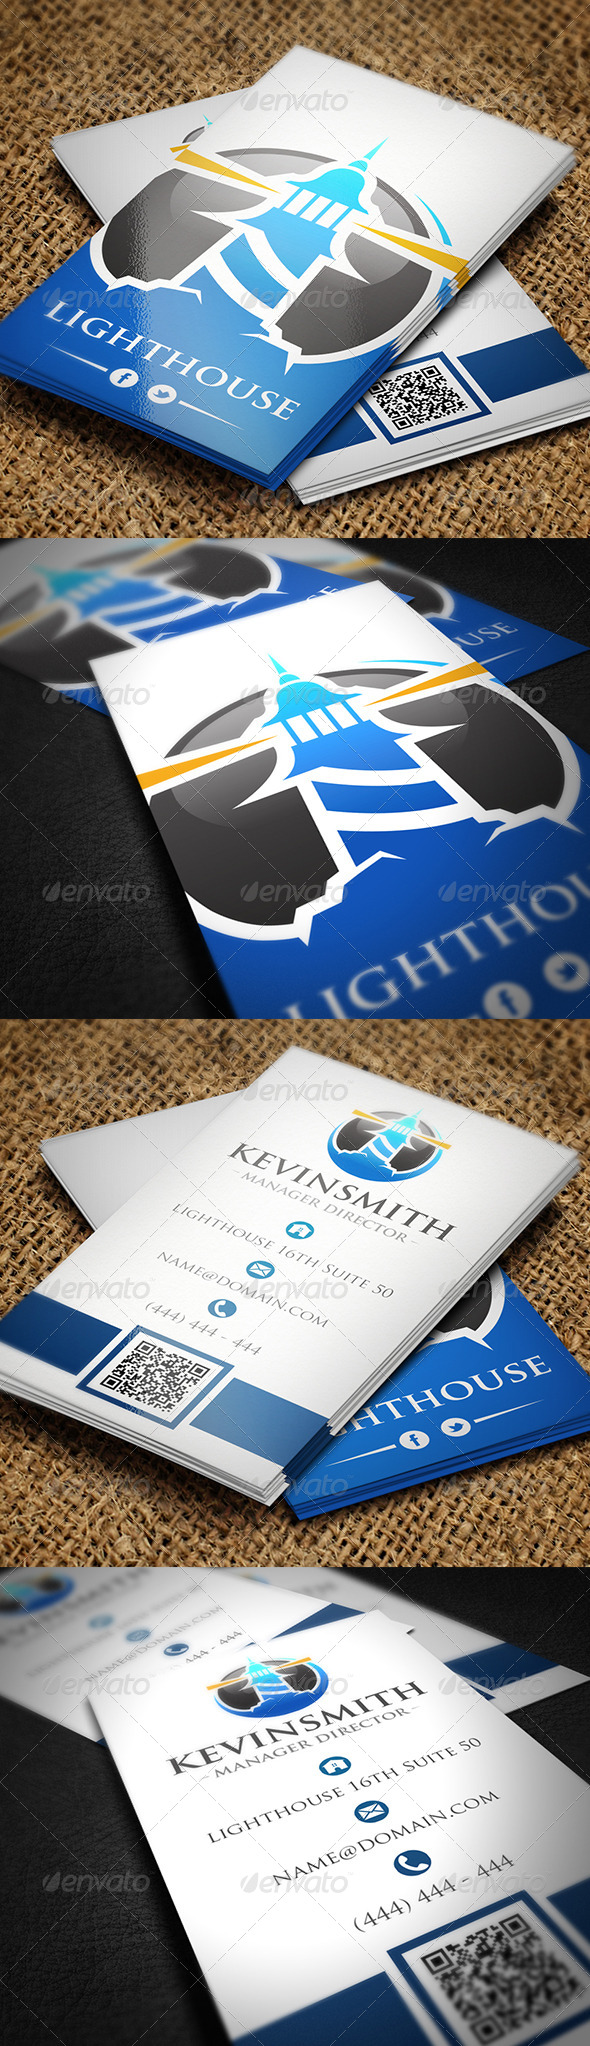 Security Company Graphics, Designs & Templates from GraphicRiver